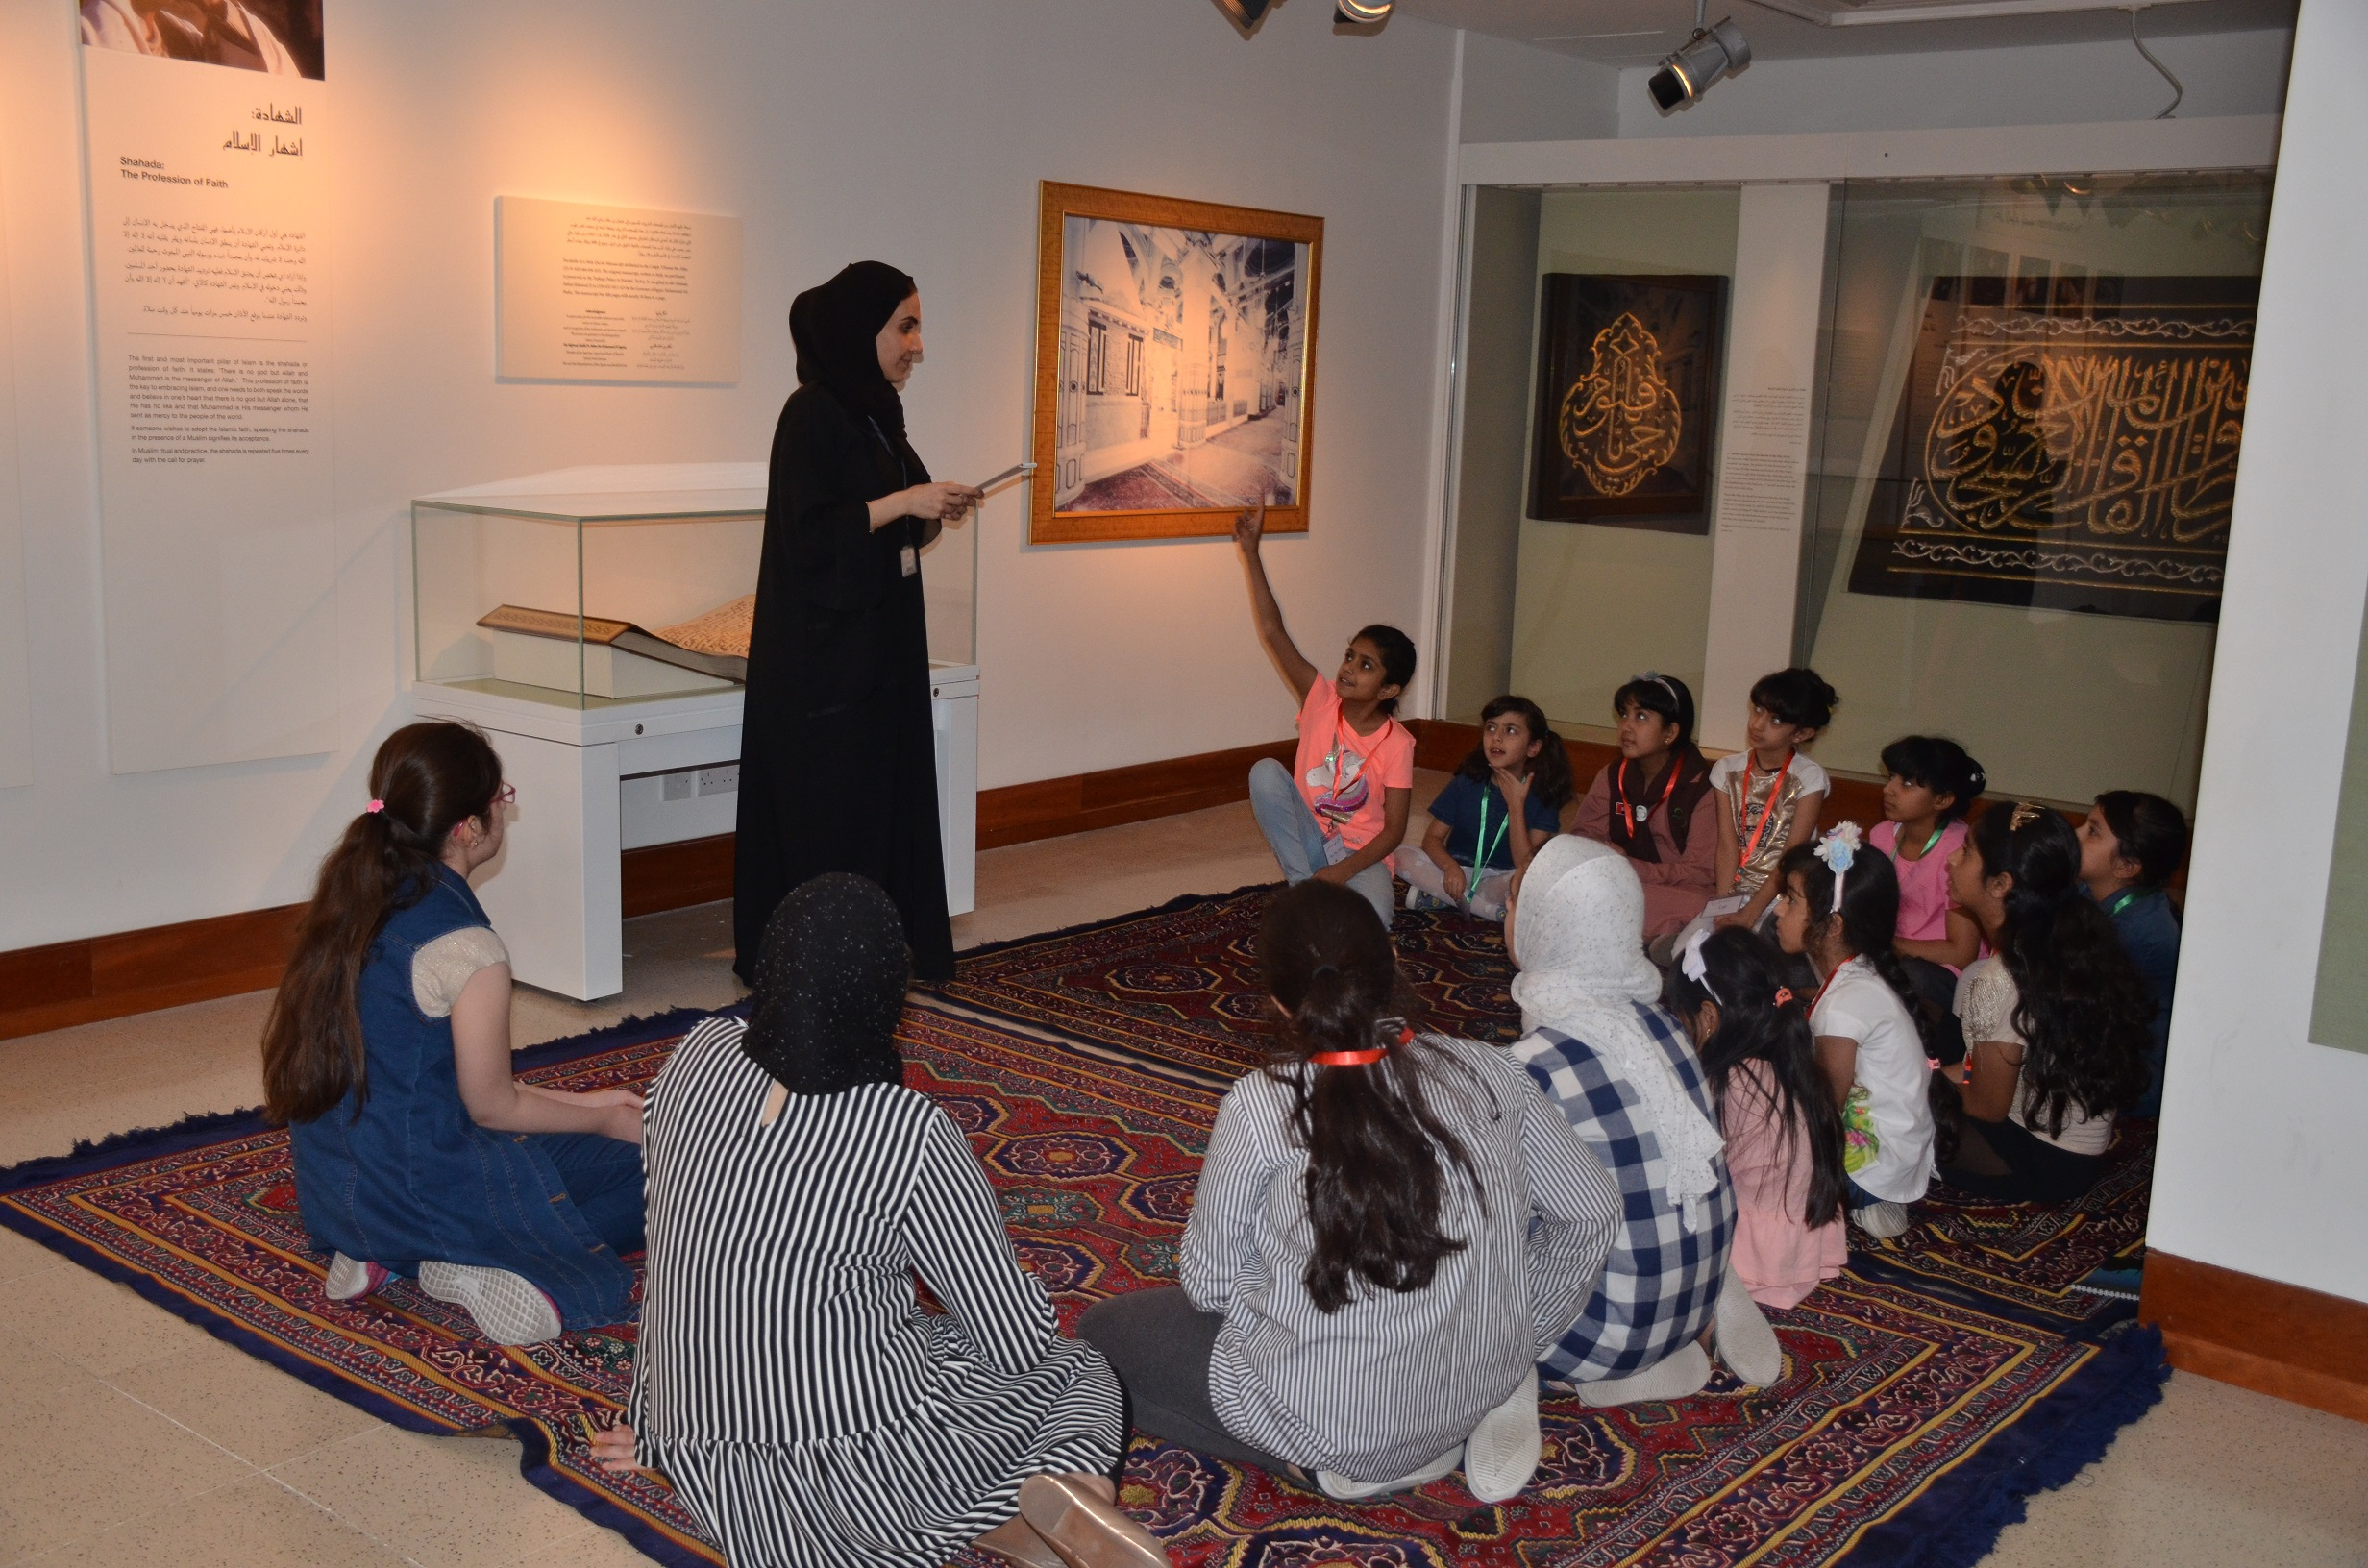 sharjah museums authority launches 'outstanding guide'